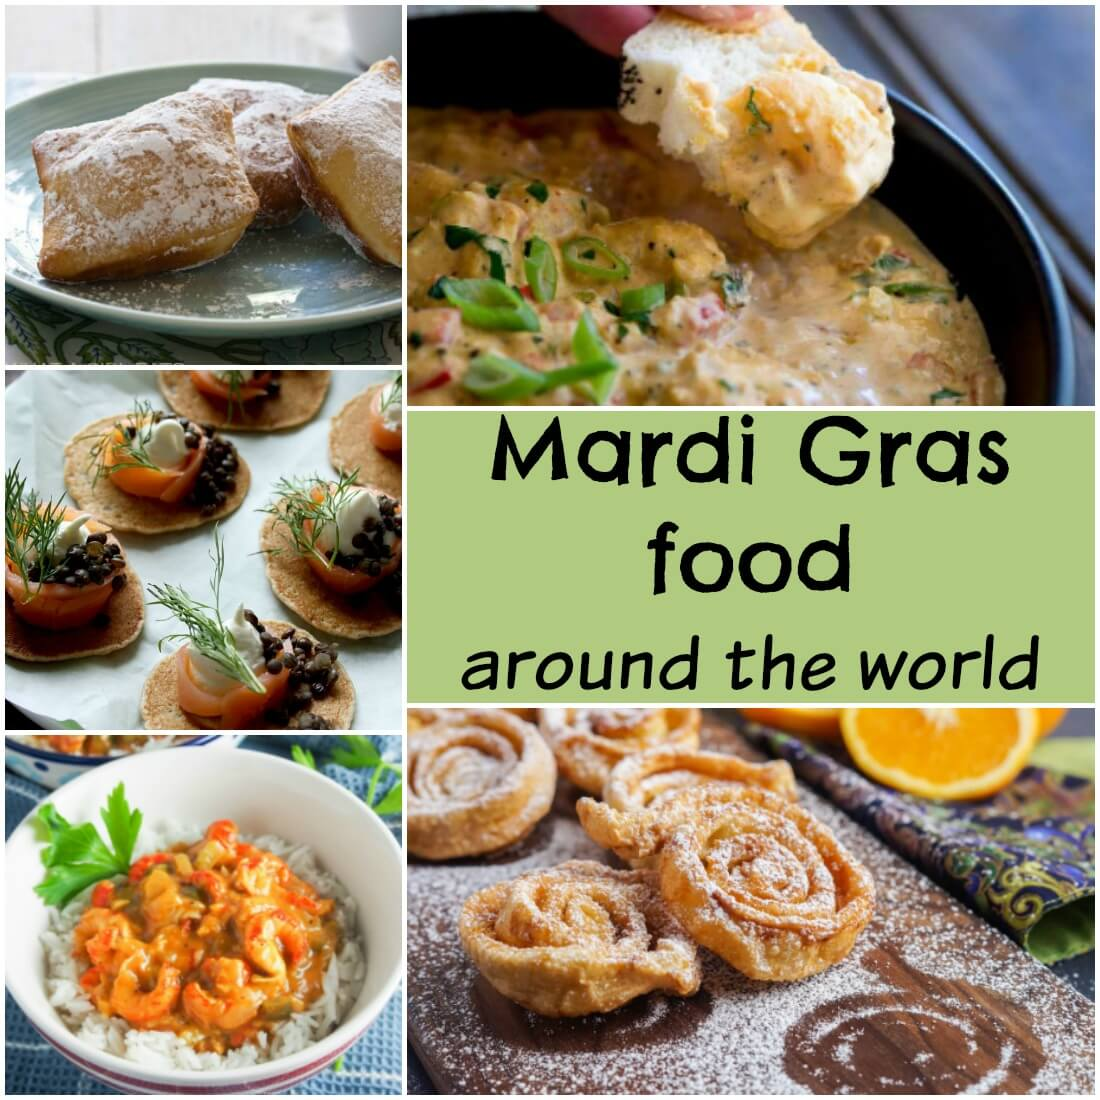 Mardi gras food around the world